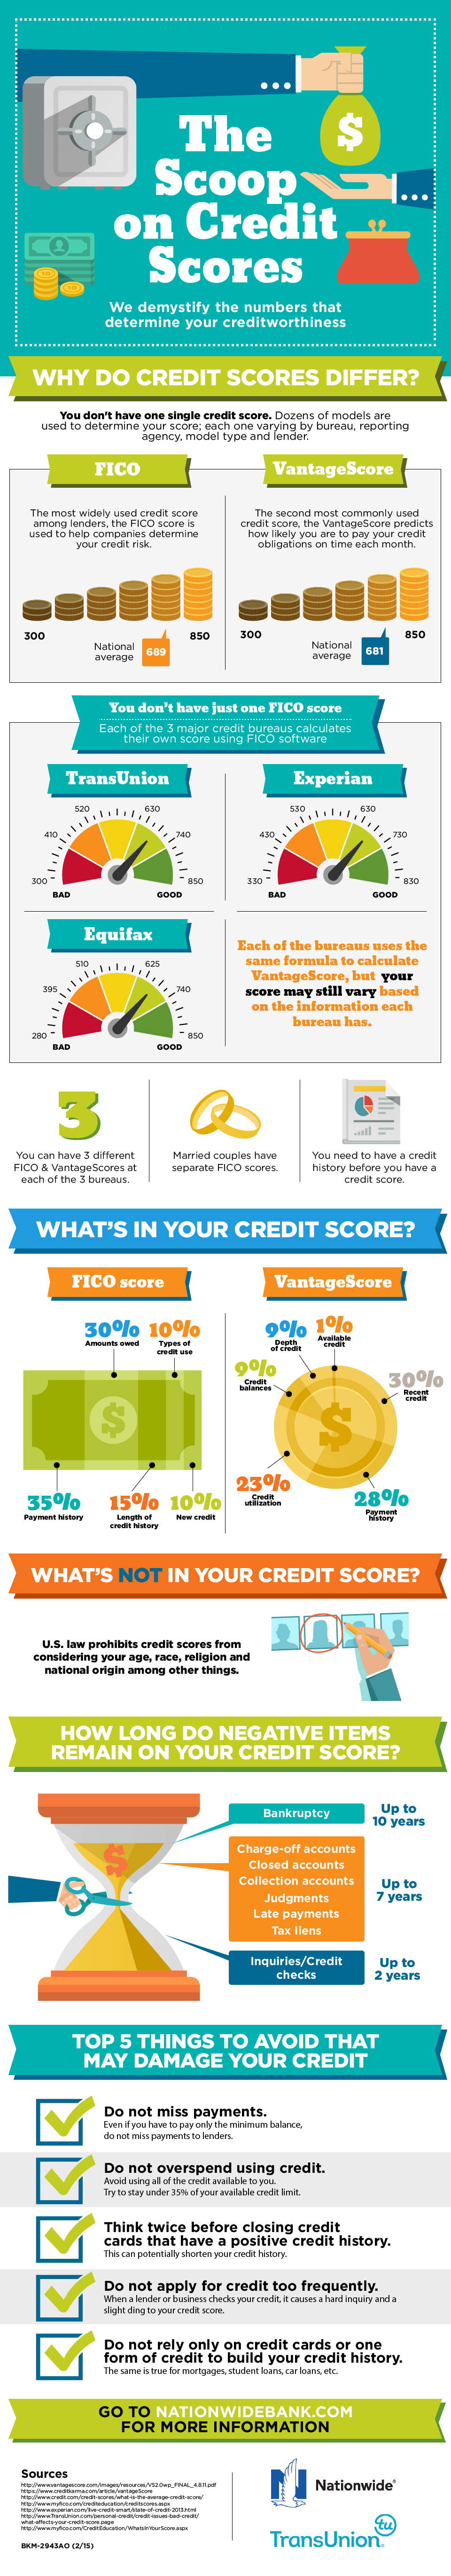 the_scoop_on_credit_scores_55a6f9799fdf7